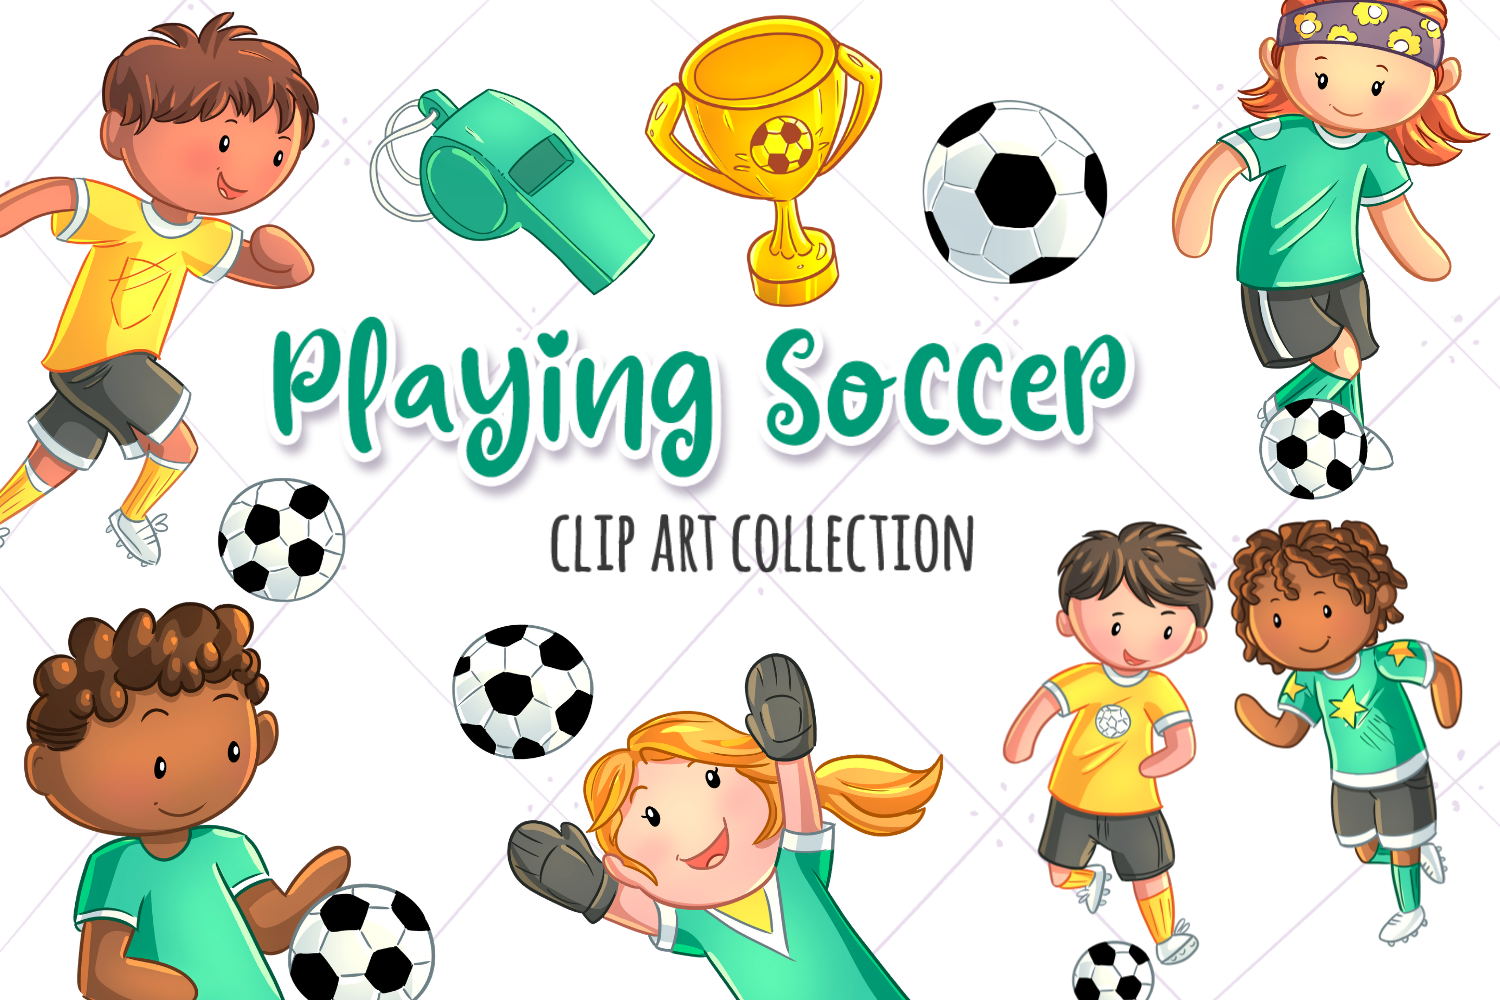 Youth Sports Clip Art: Kids Playing Soccer Clip Art Collection